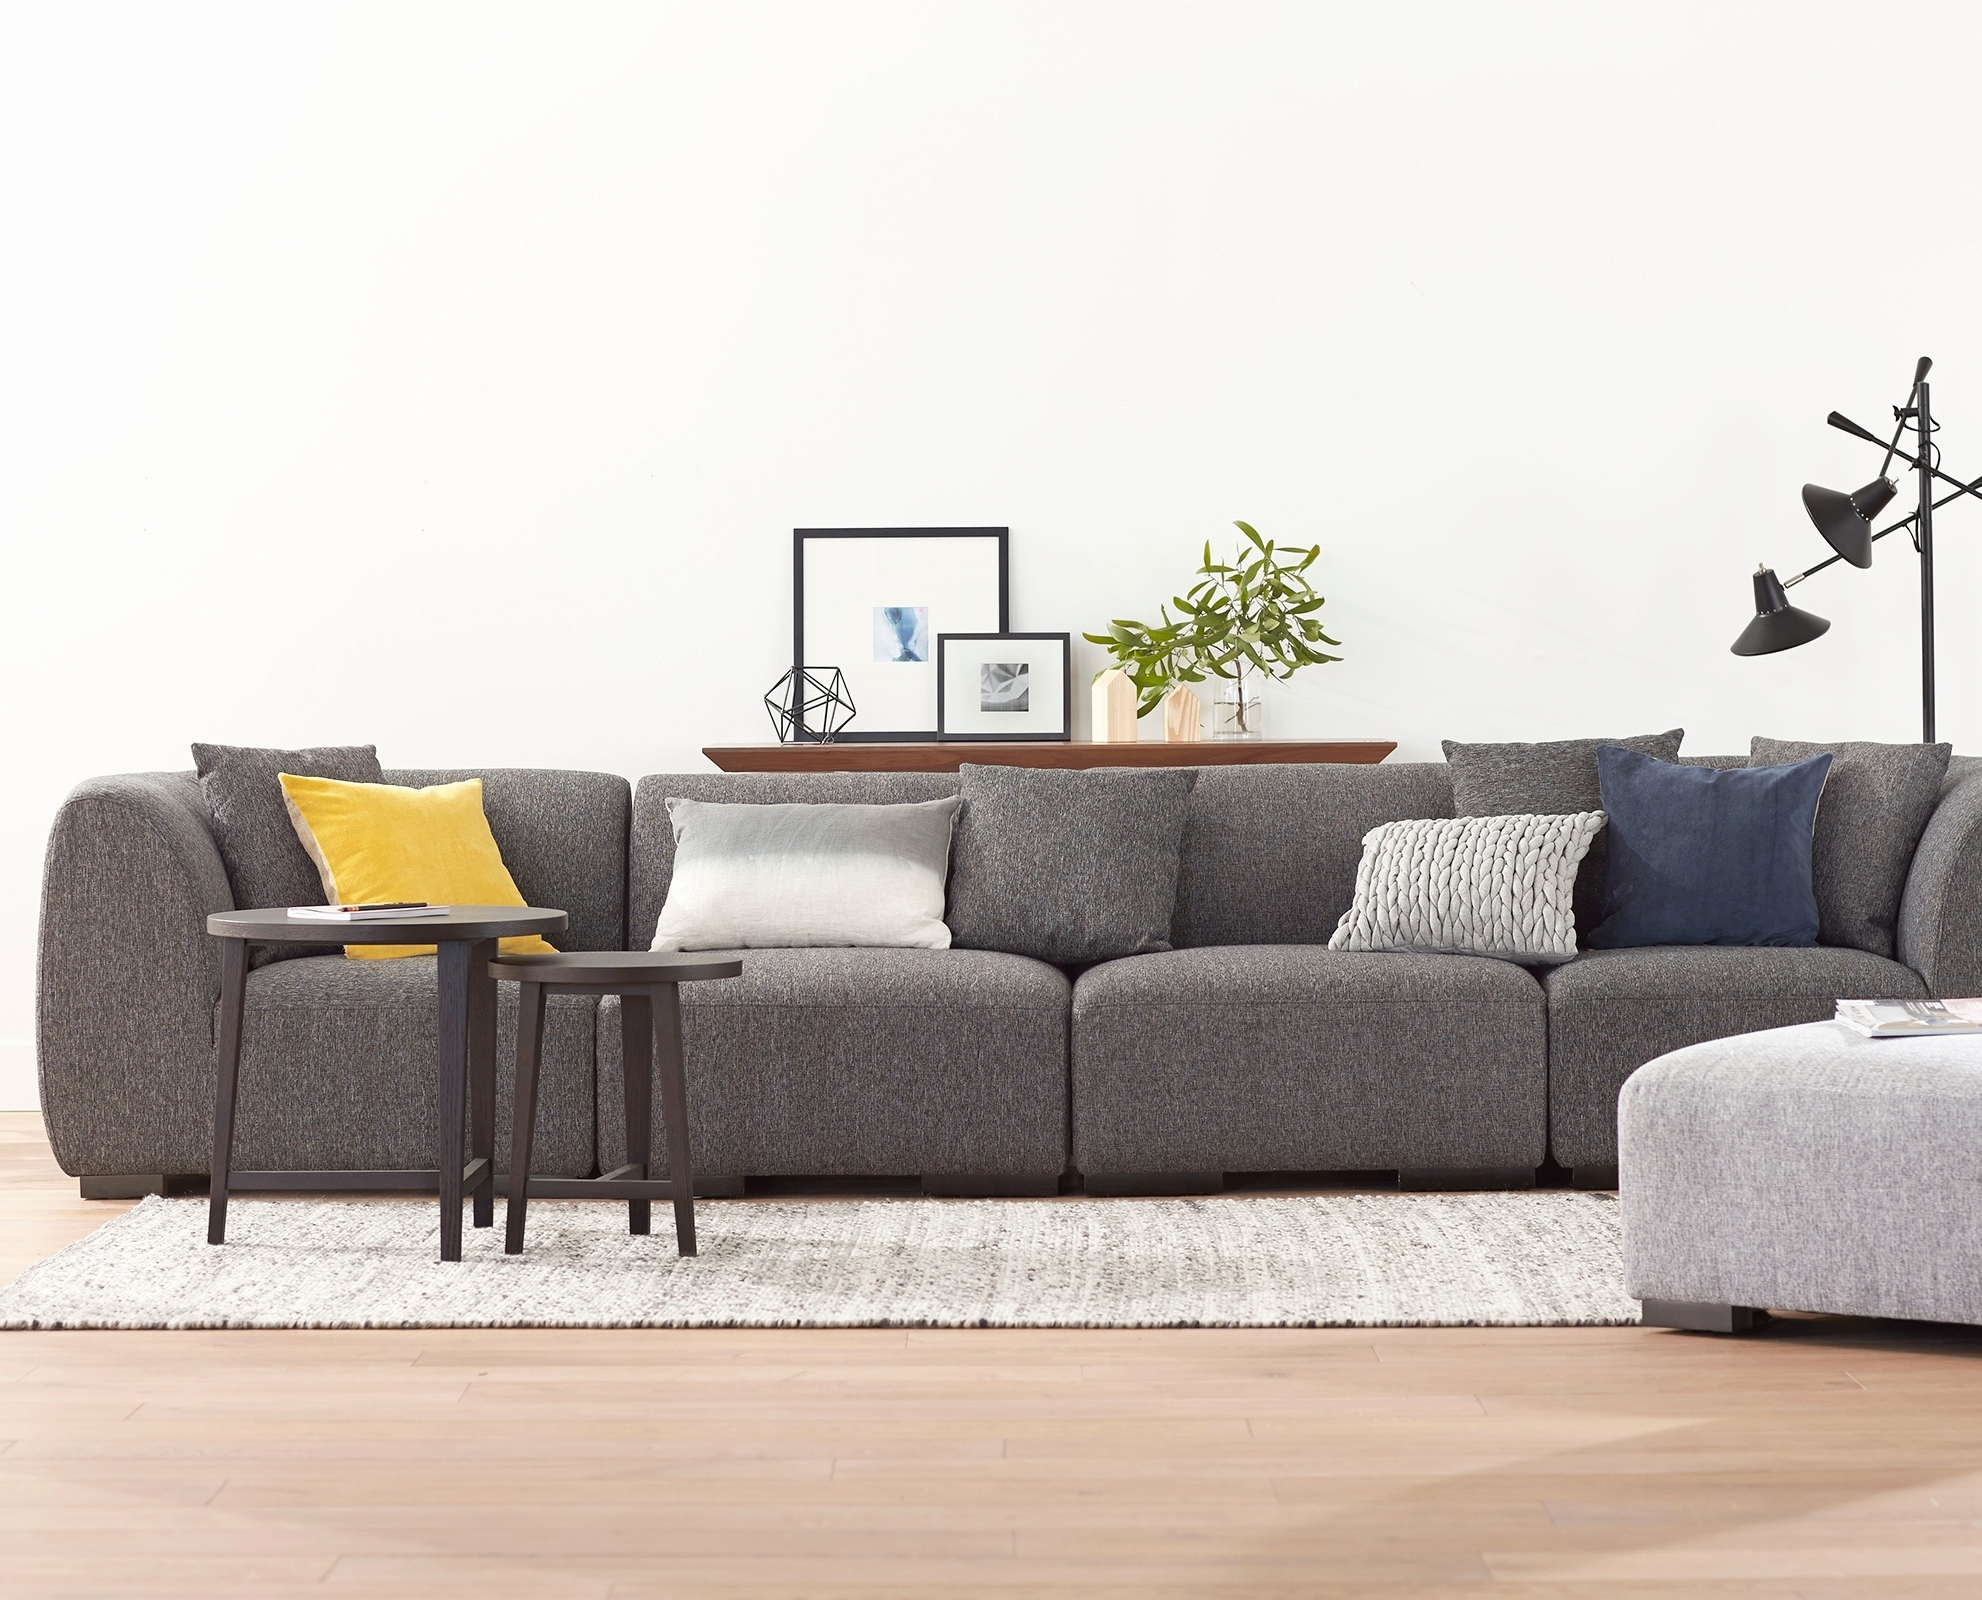 Fresh Sectional Sofa Beds For Small Spaces 2018 – Couches And For Widely Used Canada Sectional Sofas For Small Spaces (View 6 of 15)